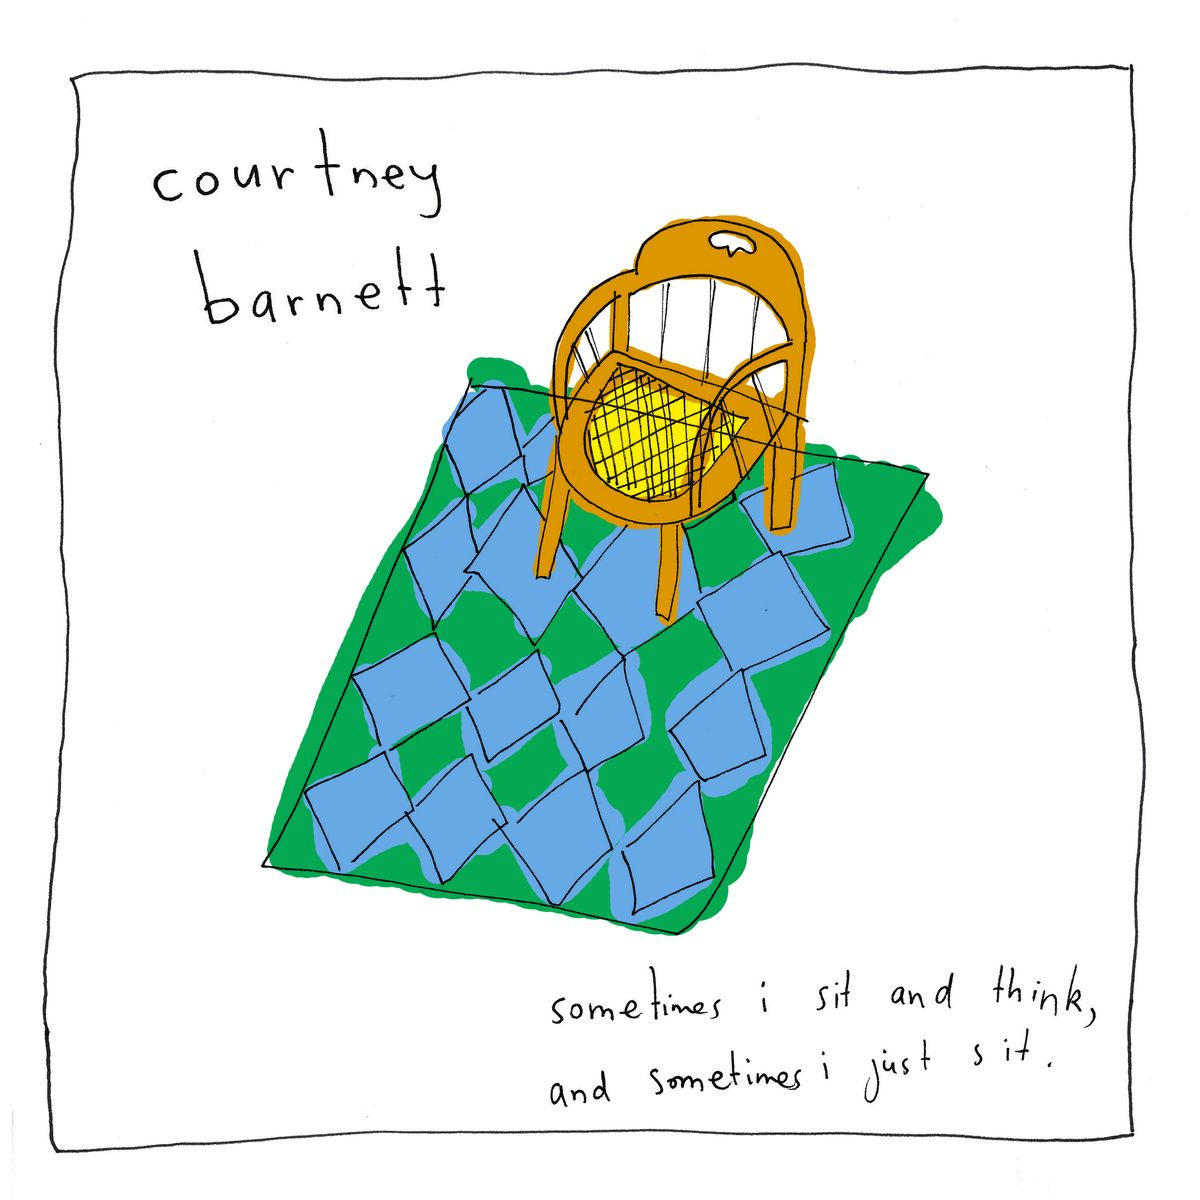 Courtney Barnett - Sometimes I Sit And Think & Sometimes I Just Sit album cover